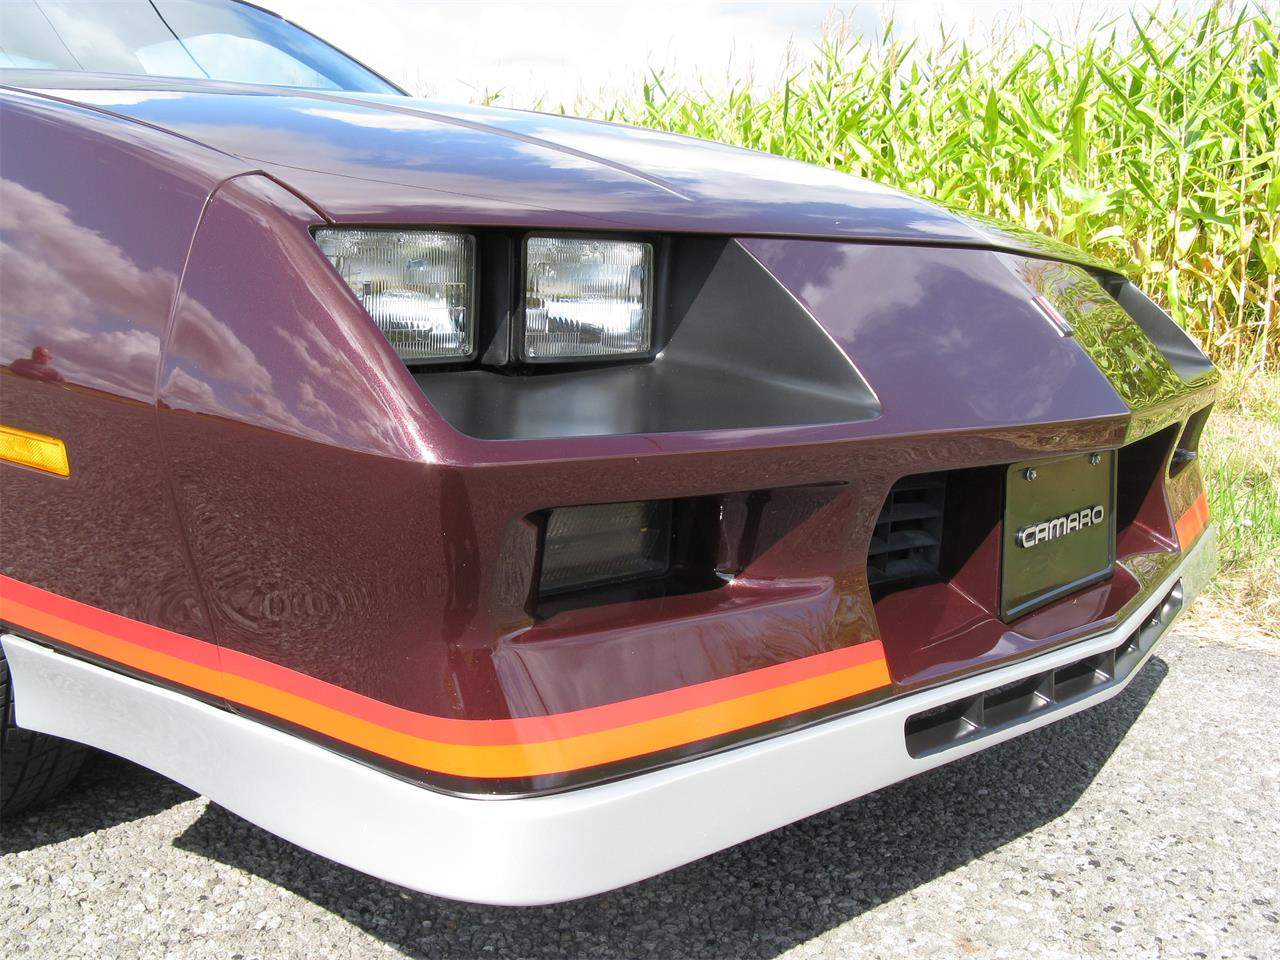 1982 Chevrolet Camaro Z28 (CC-1266128) for sale in Shaker Heights, Ohio